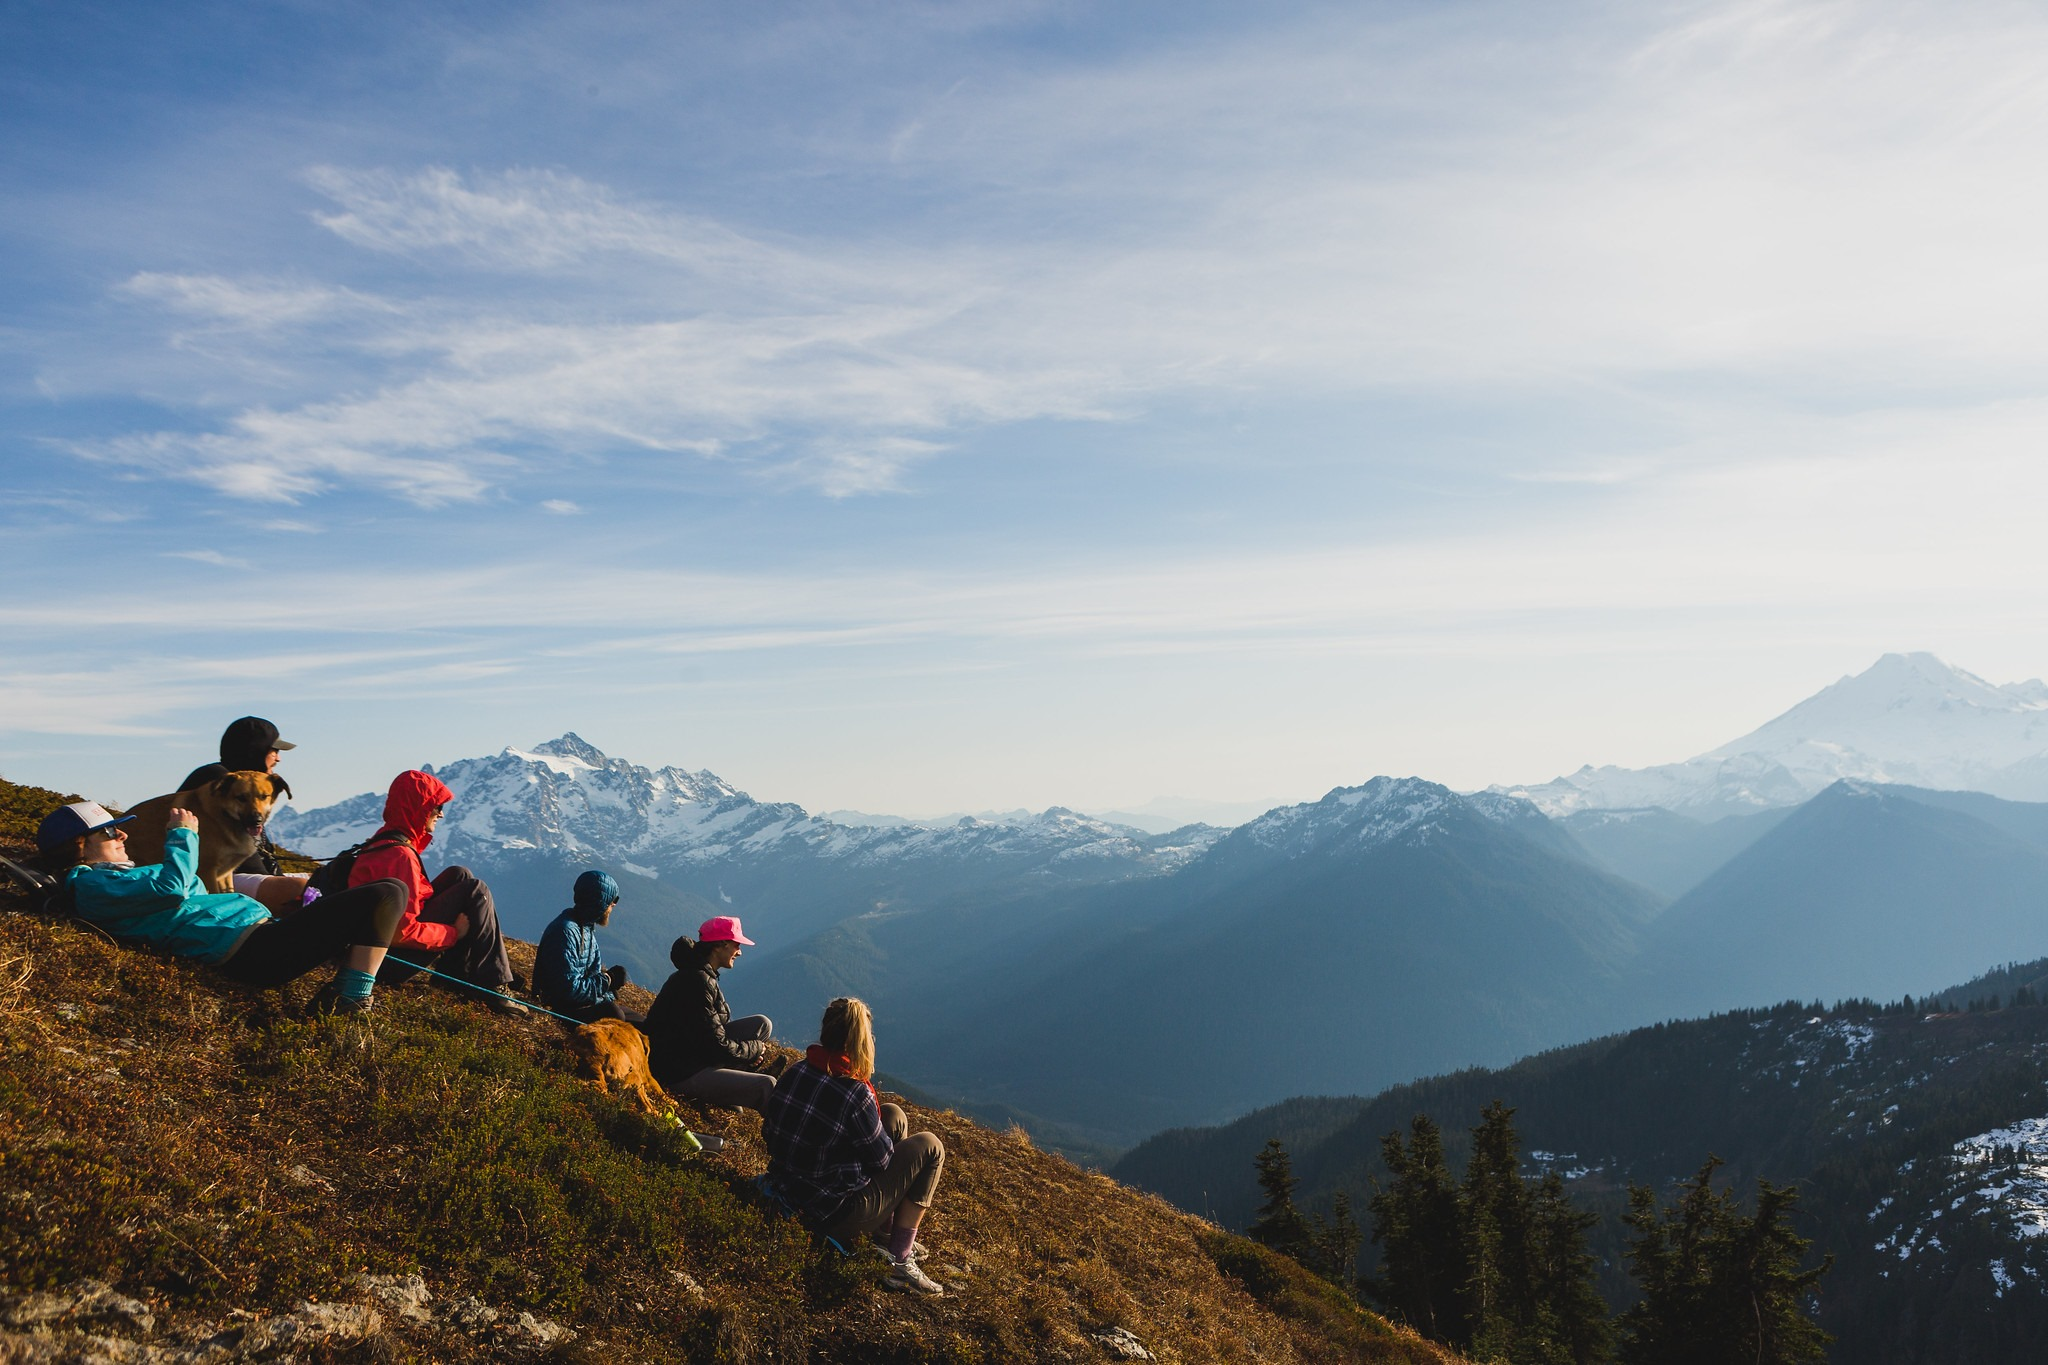 Students sitting on the summit of a mountain looking over a valley to the next mountain range